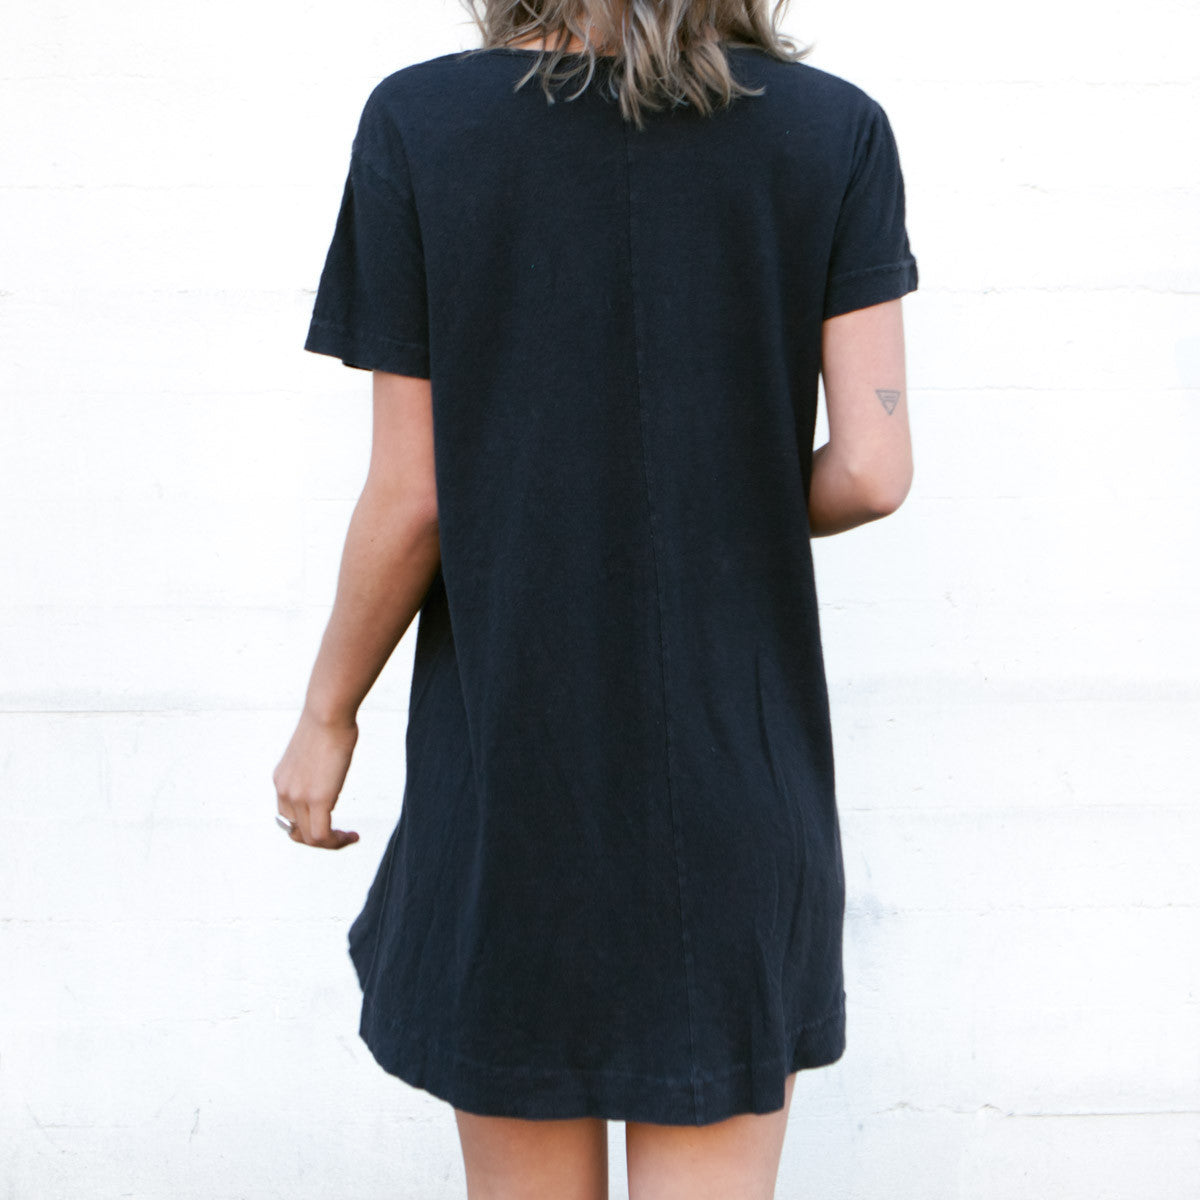 JUNGMAVEN - BEACH DRESS - Black is sold out!